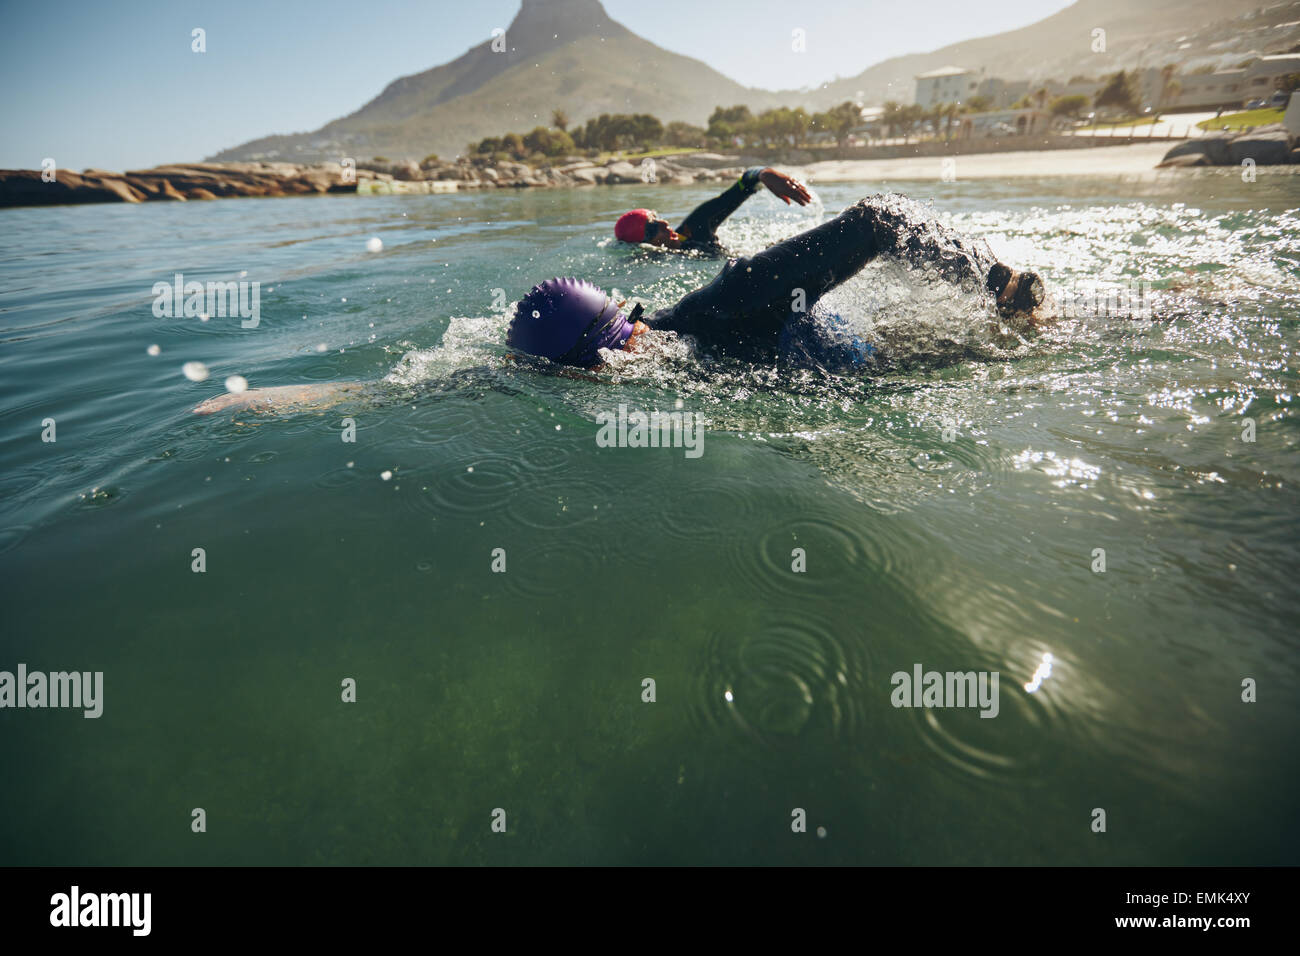 Triathlon swimmers churning up the water. Athletes practicing for triathletic race in lake. - Stock Image